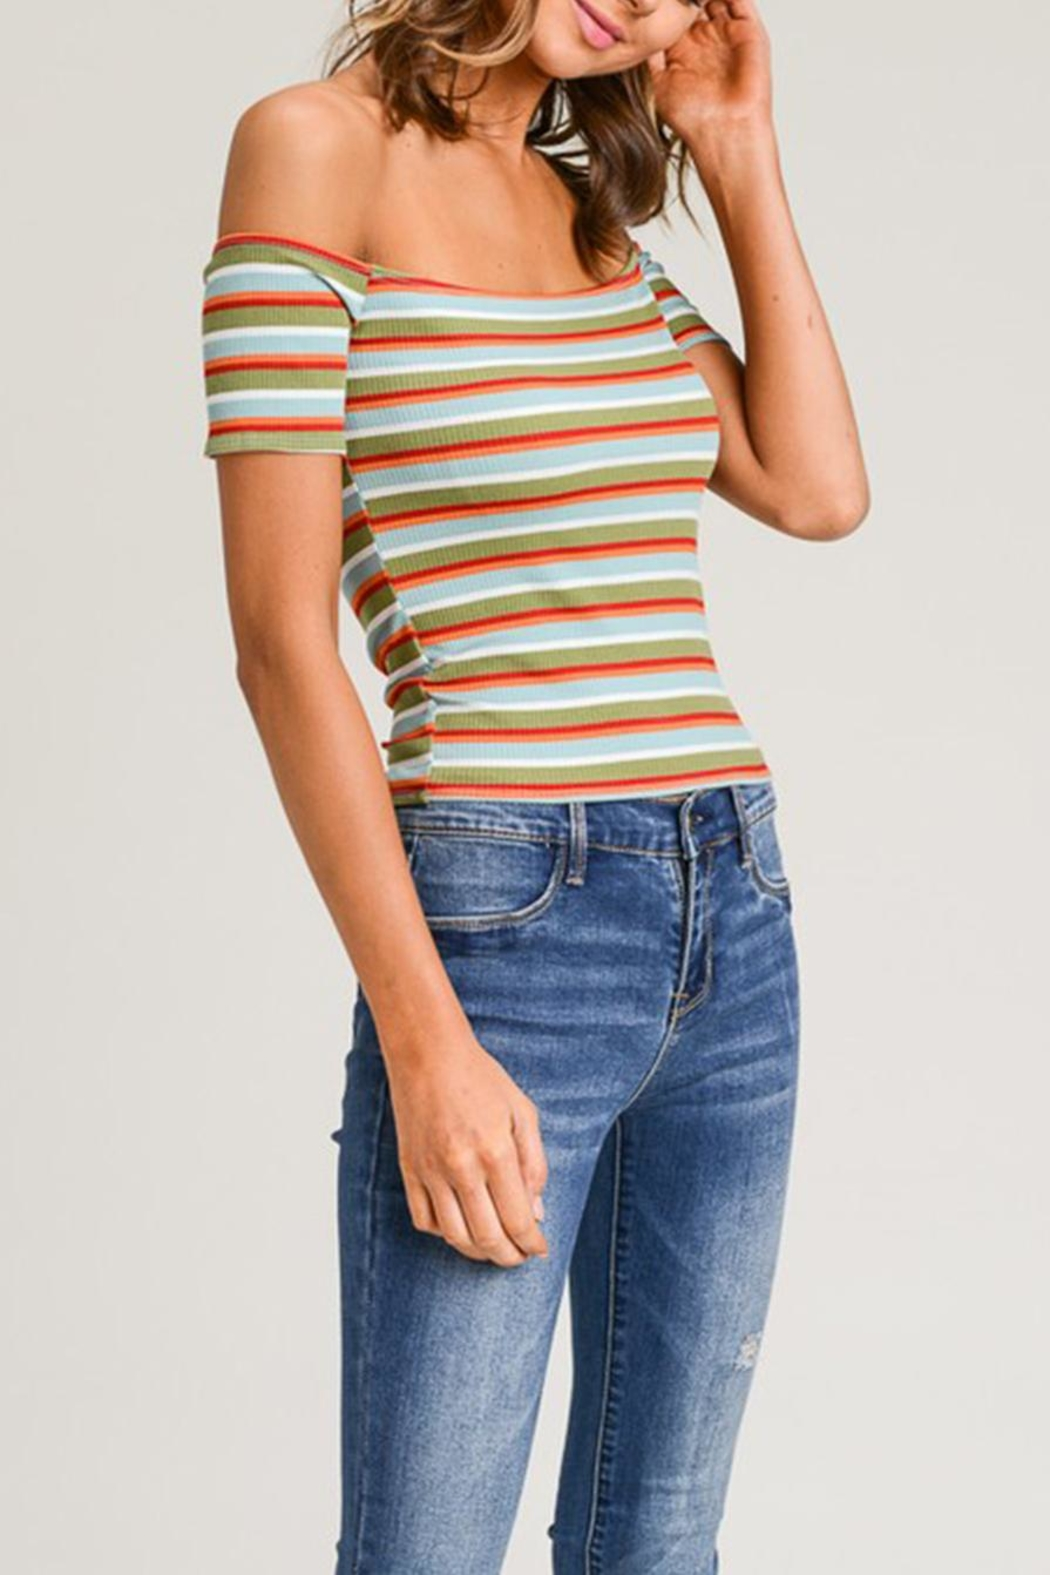 Wasabi + Mint Stripe Crop Top - Front Full Image